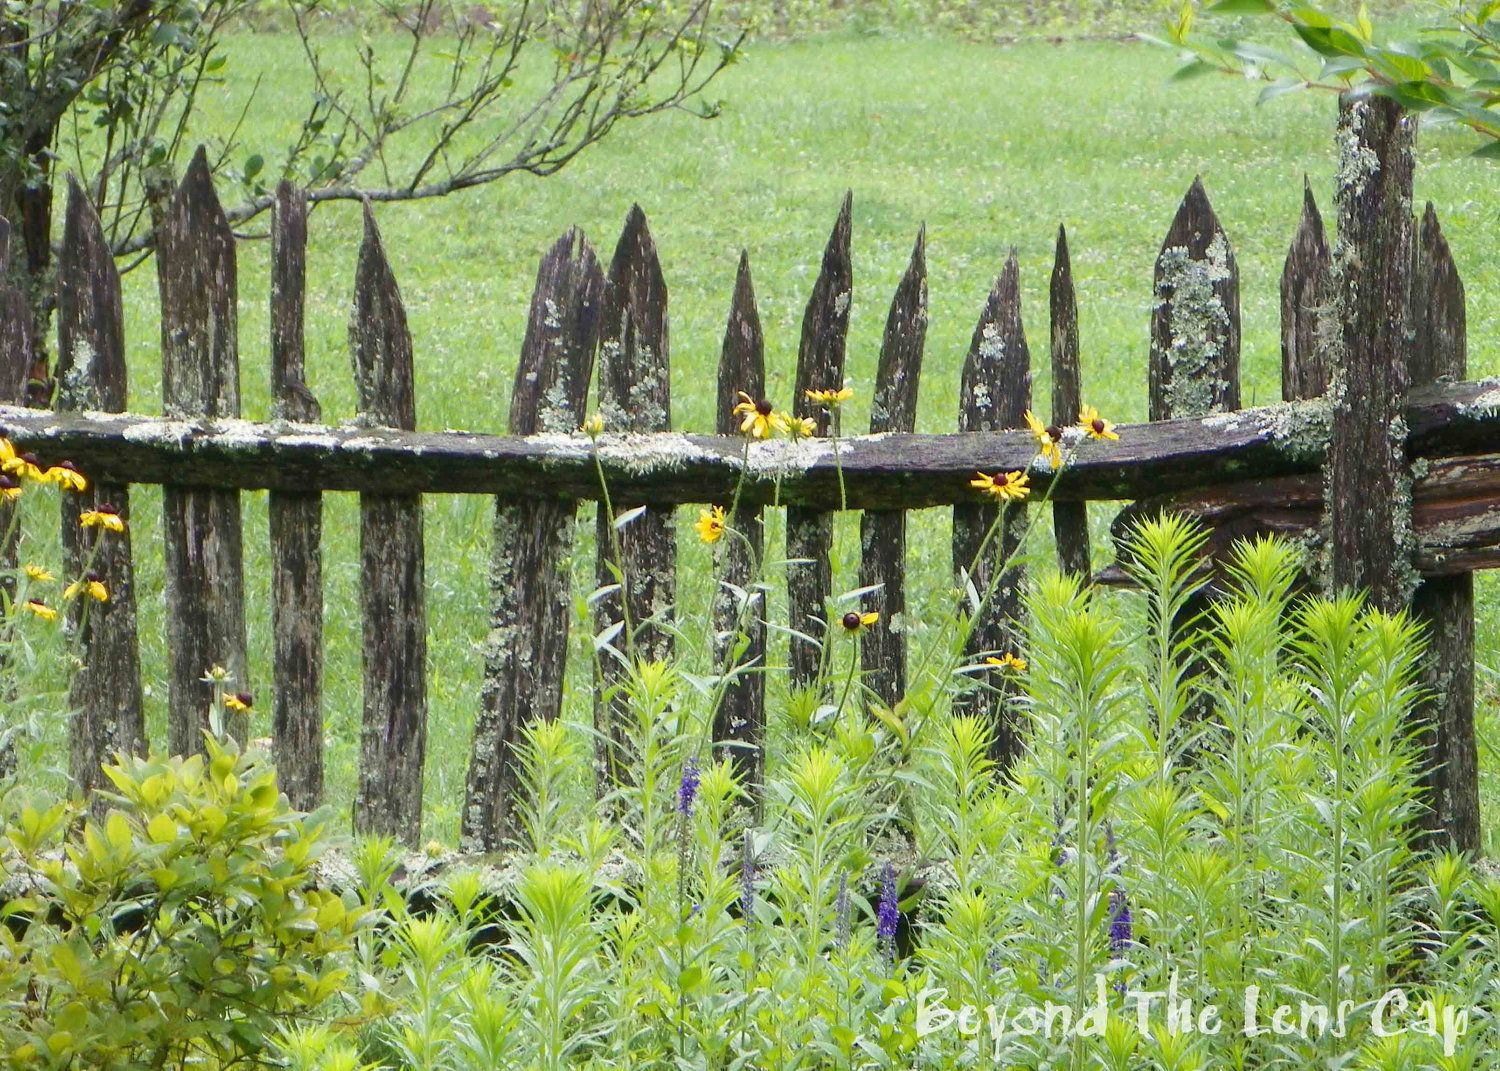 Rustic Wood Fence Designs Rustic Wood Fences Rustic Wooden